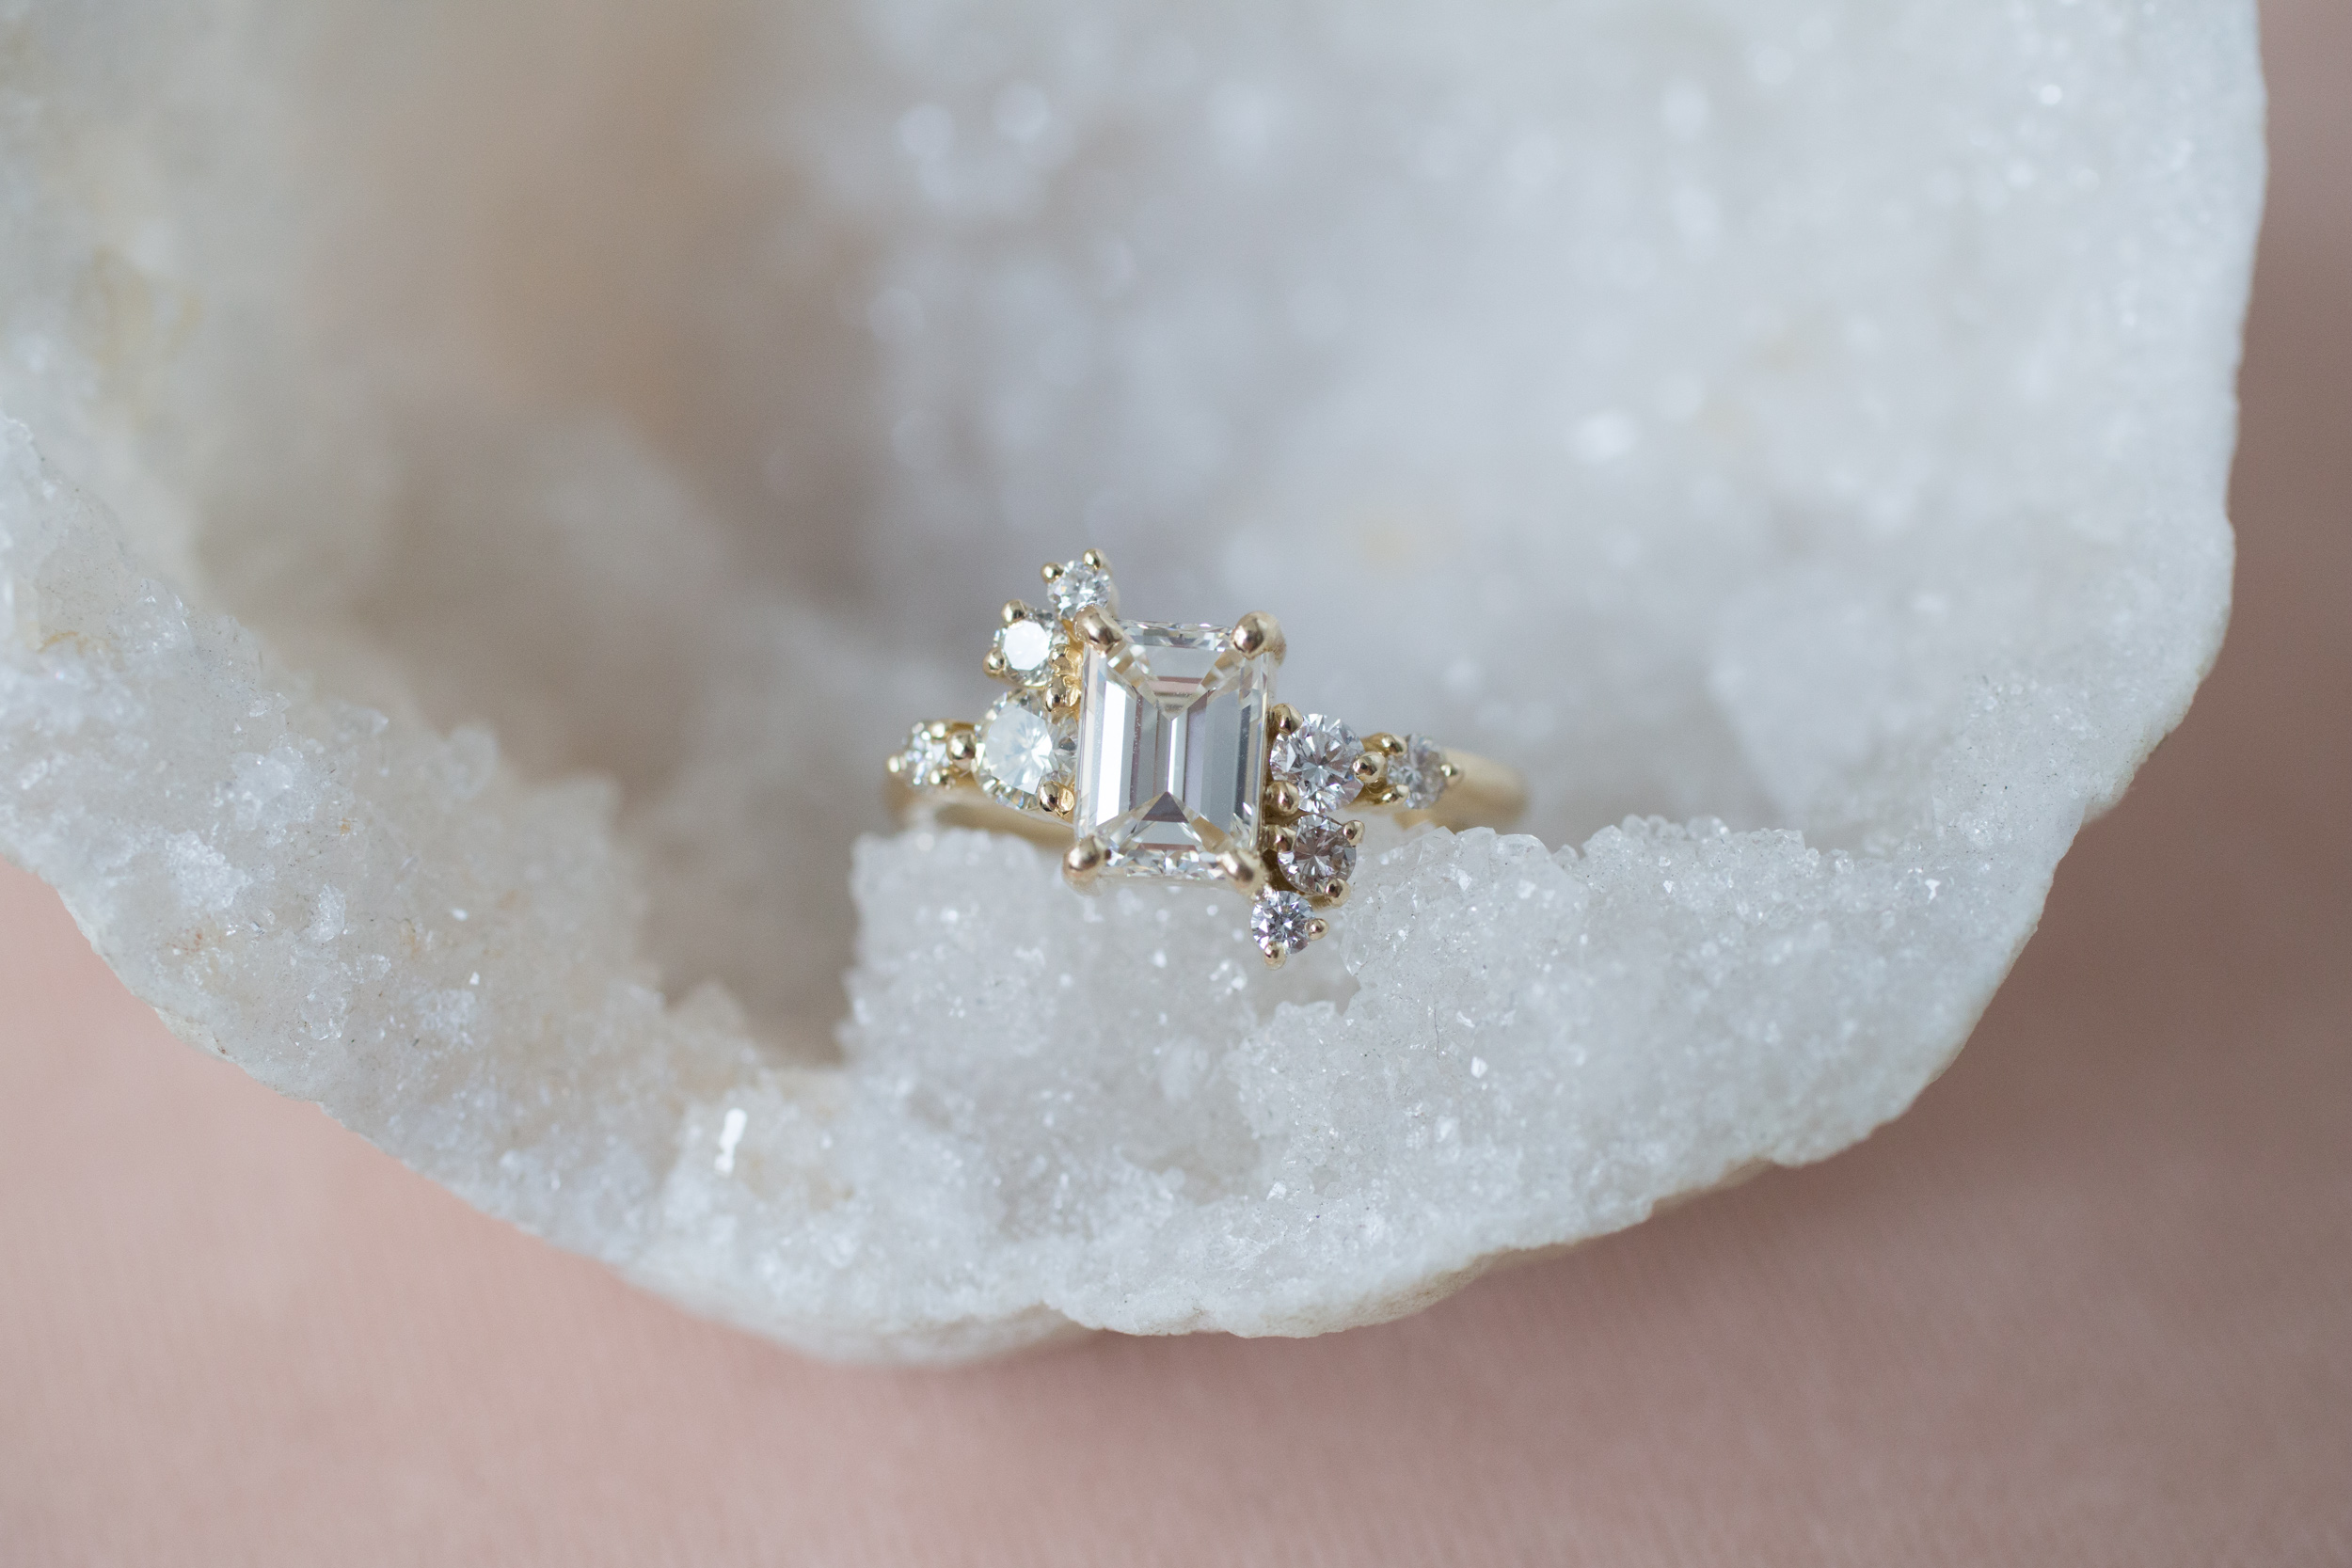 Lance + Kaylee Heirloom Emerald Cut Diamond Cluster Ring-1.jpg